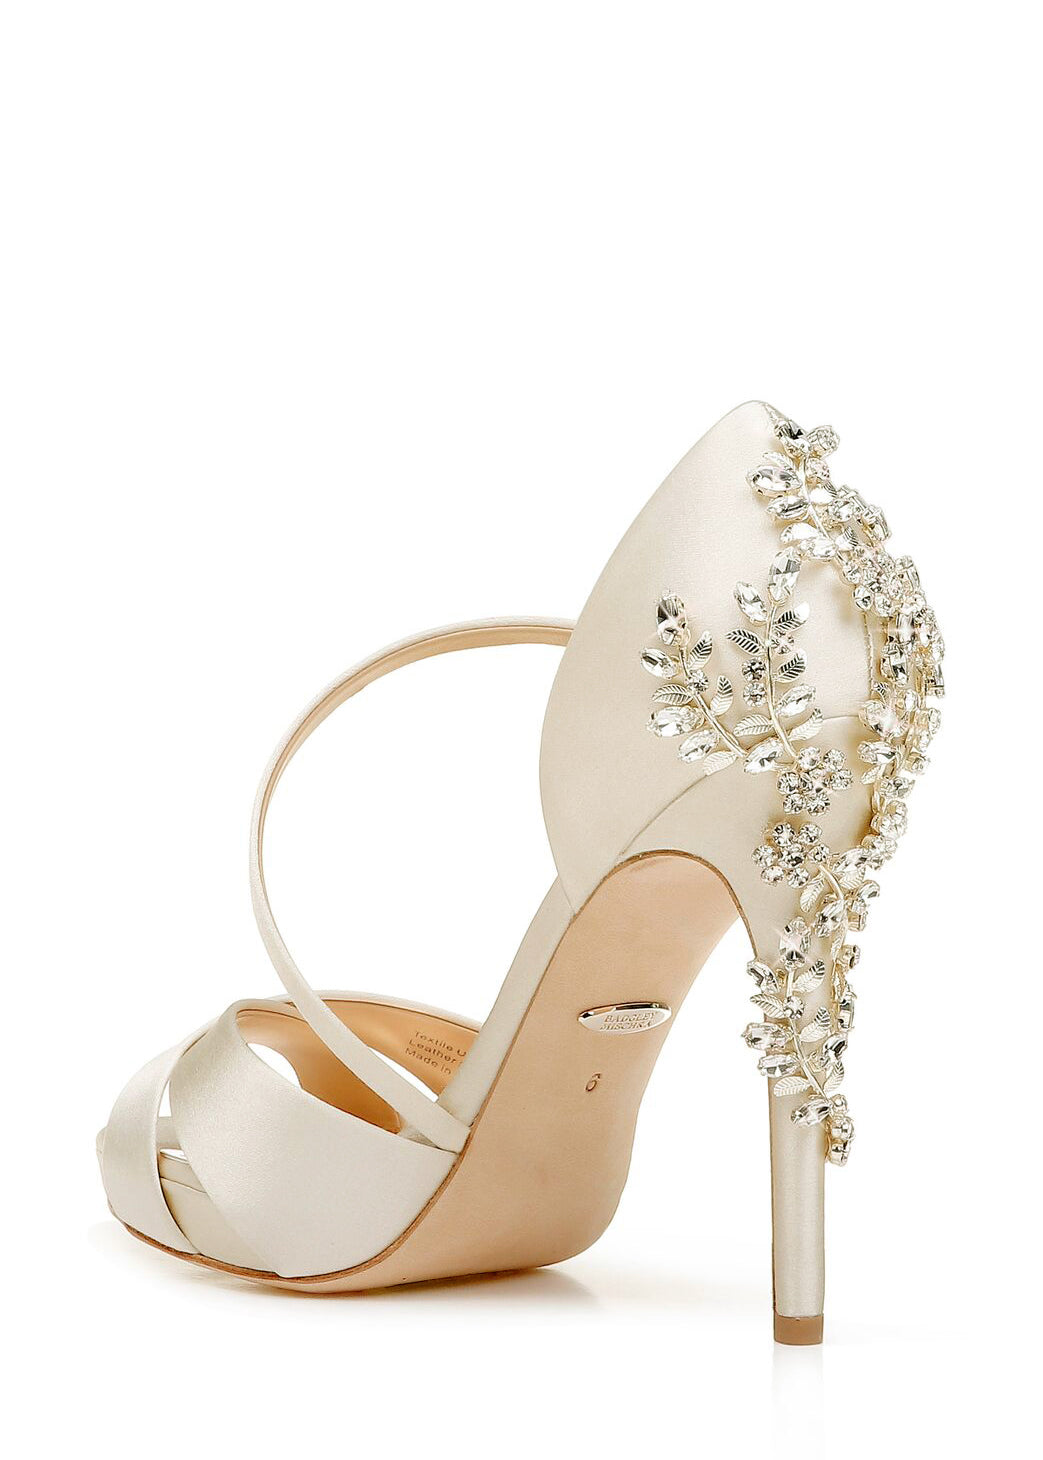 8dc5177a97a Badgley Mischka Wedding Shoes - Eternal Bridal